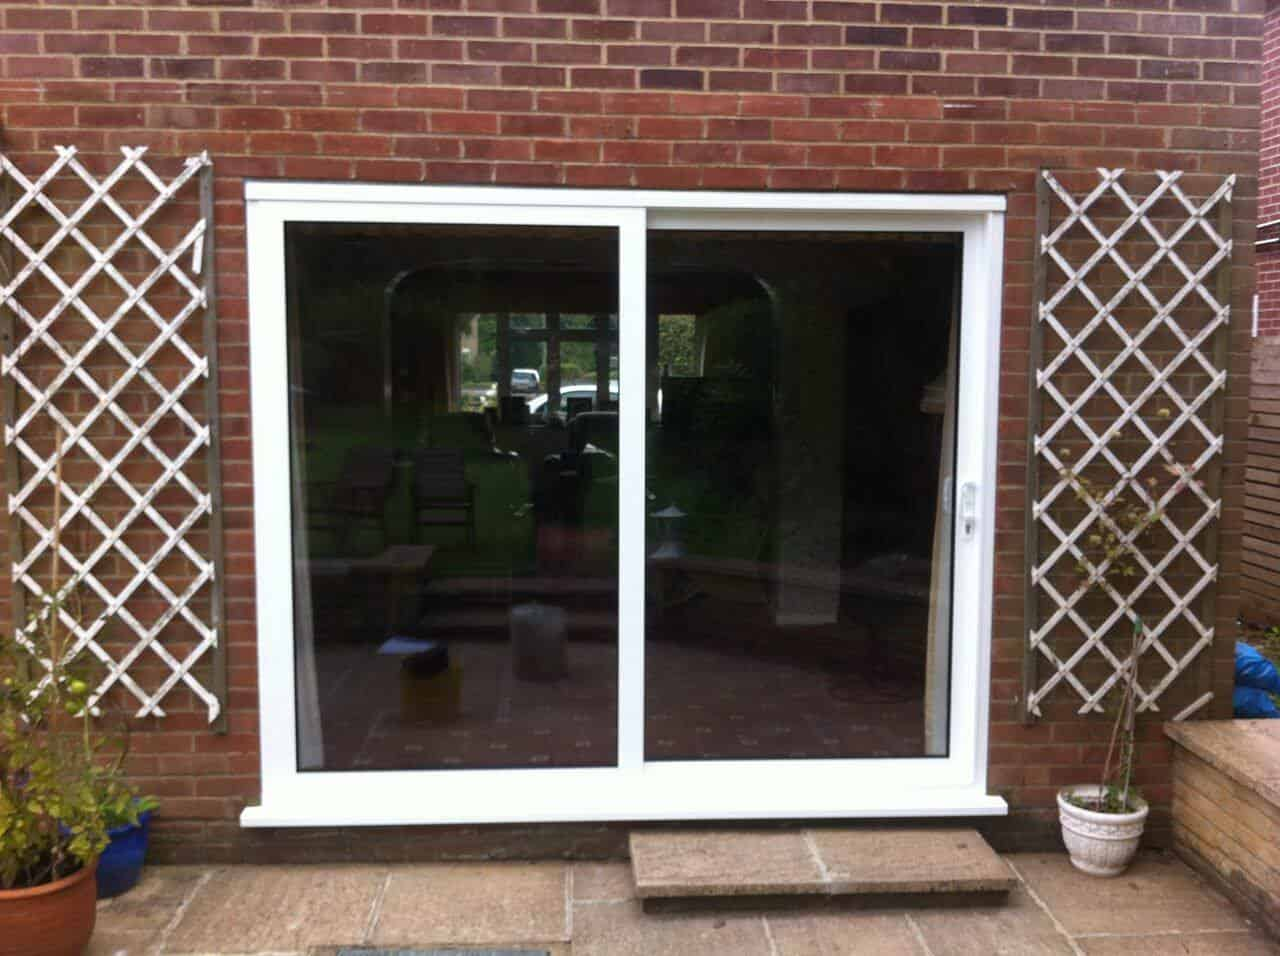 Double Glazed Windows Tucson : Upvc patio doors pangbourne double glazed reading